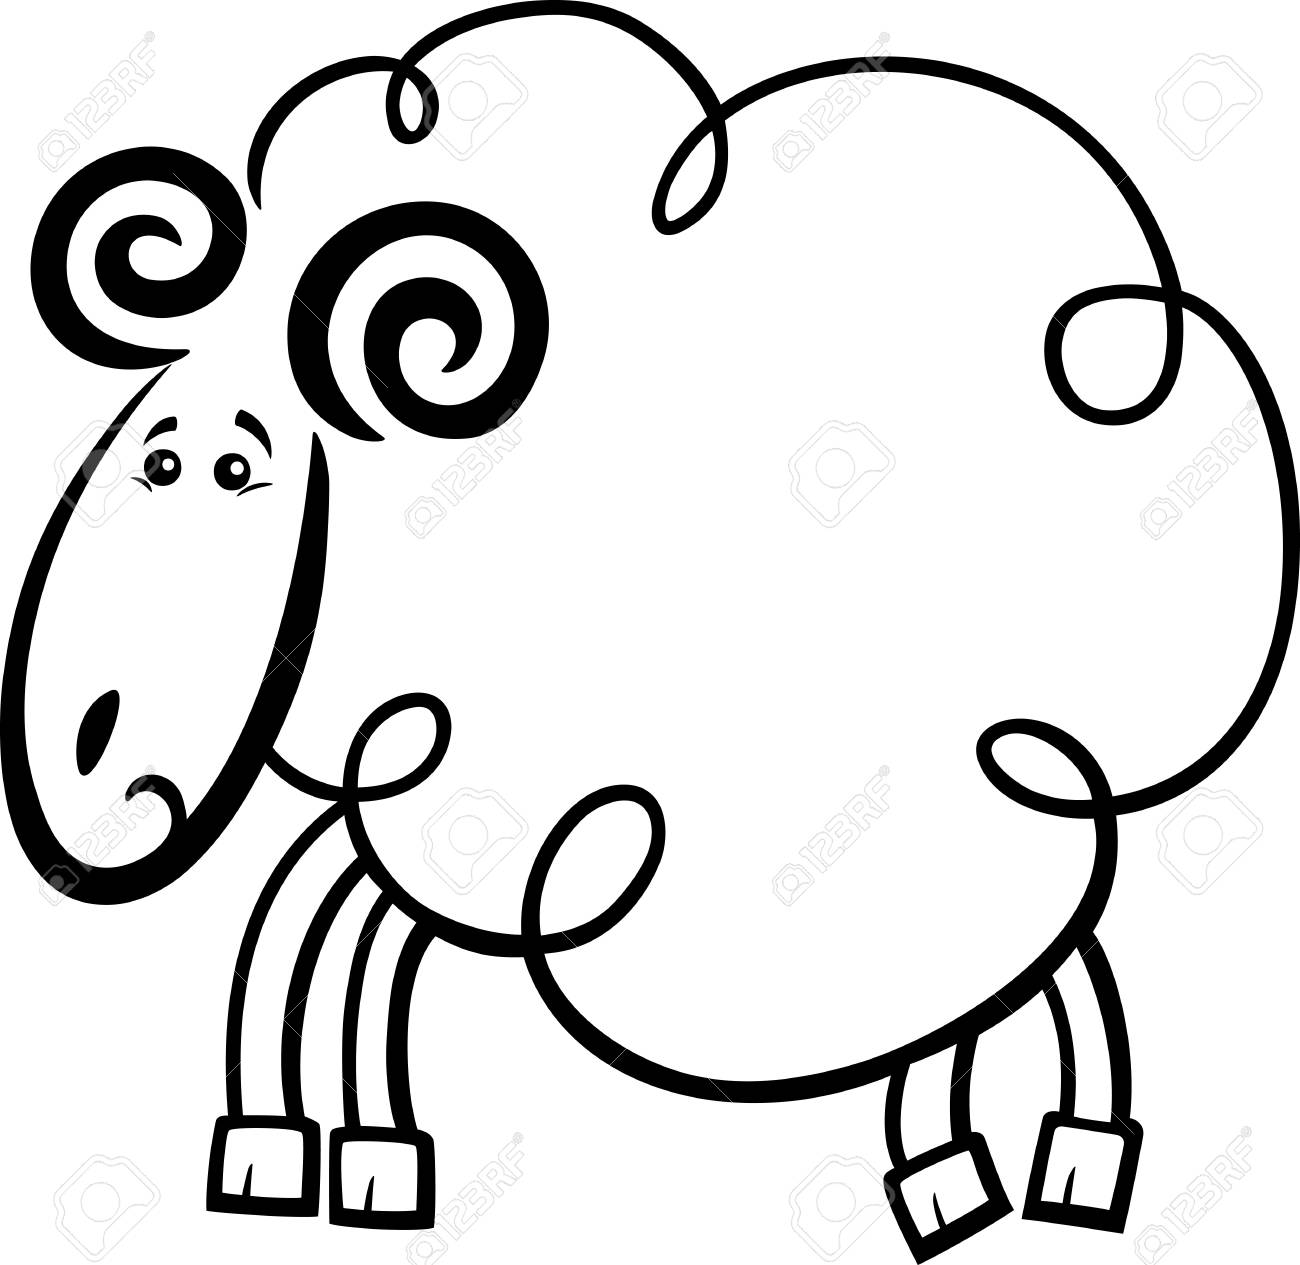 Coloring book pages farm animals - Illustration Of Cute Ram Or Sheep Farm Animal Cartoon Character For Coloring Book Or Page Stock